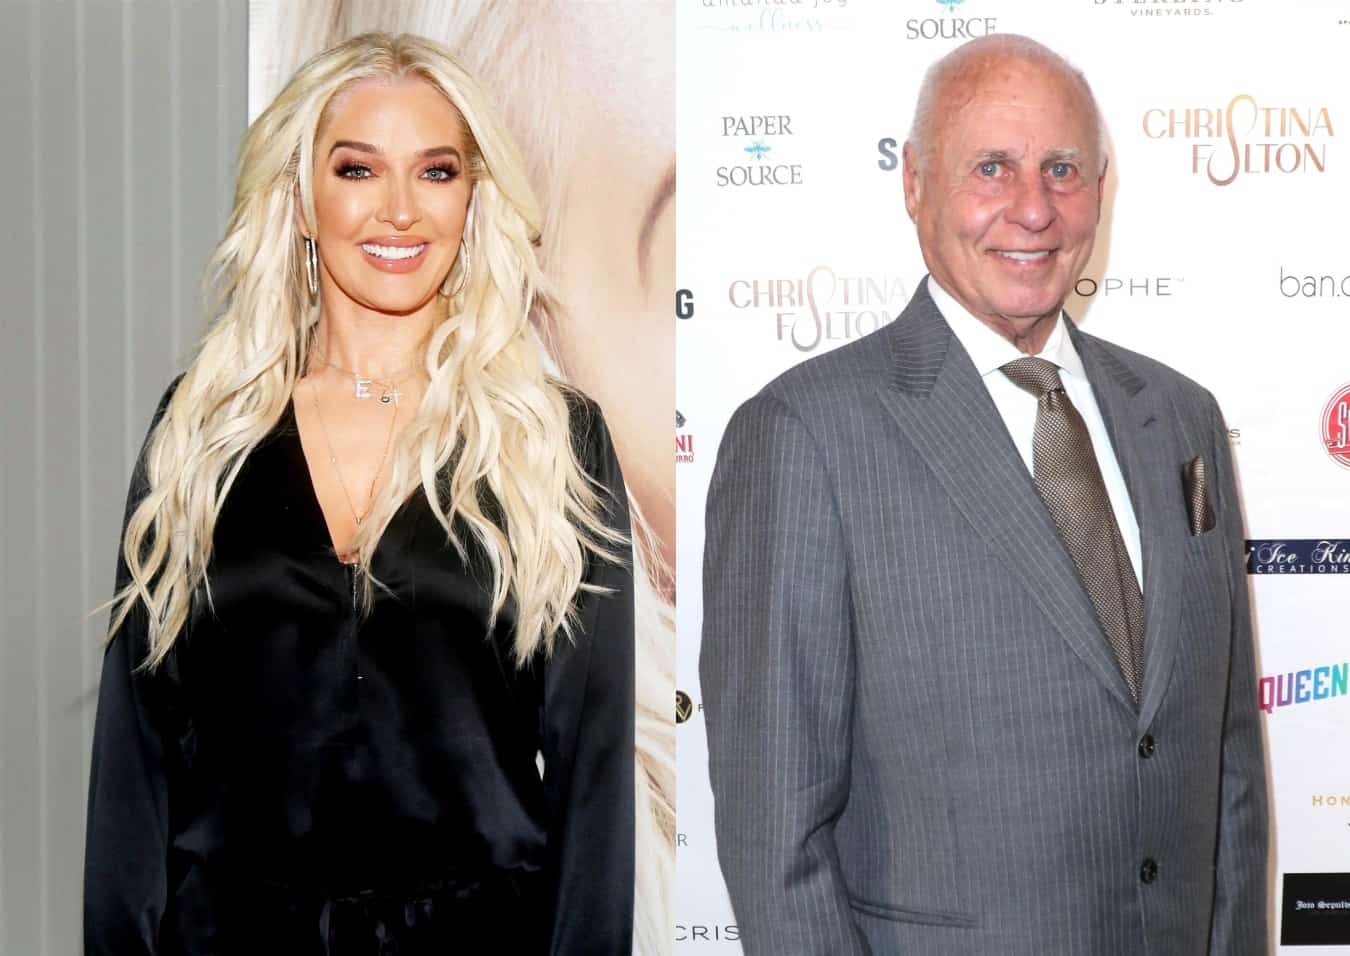 Erika Jayne Accused of Faking Concern for Thomas Girardi Victims After RHOBH Star Objects NFL Case Transfer in Alleged Effort to Derail Trustee's Work, Plus Live Viewing Thread